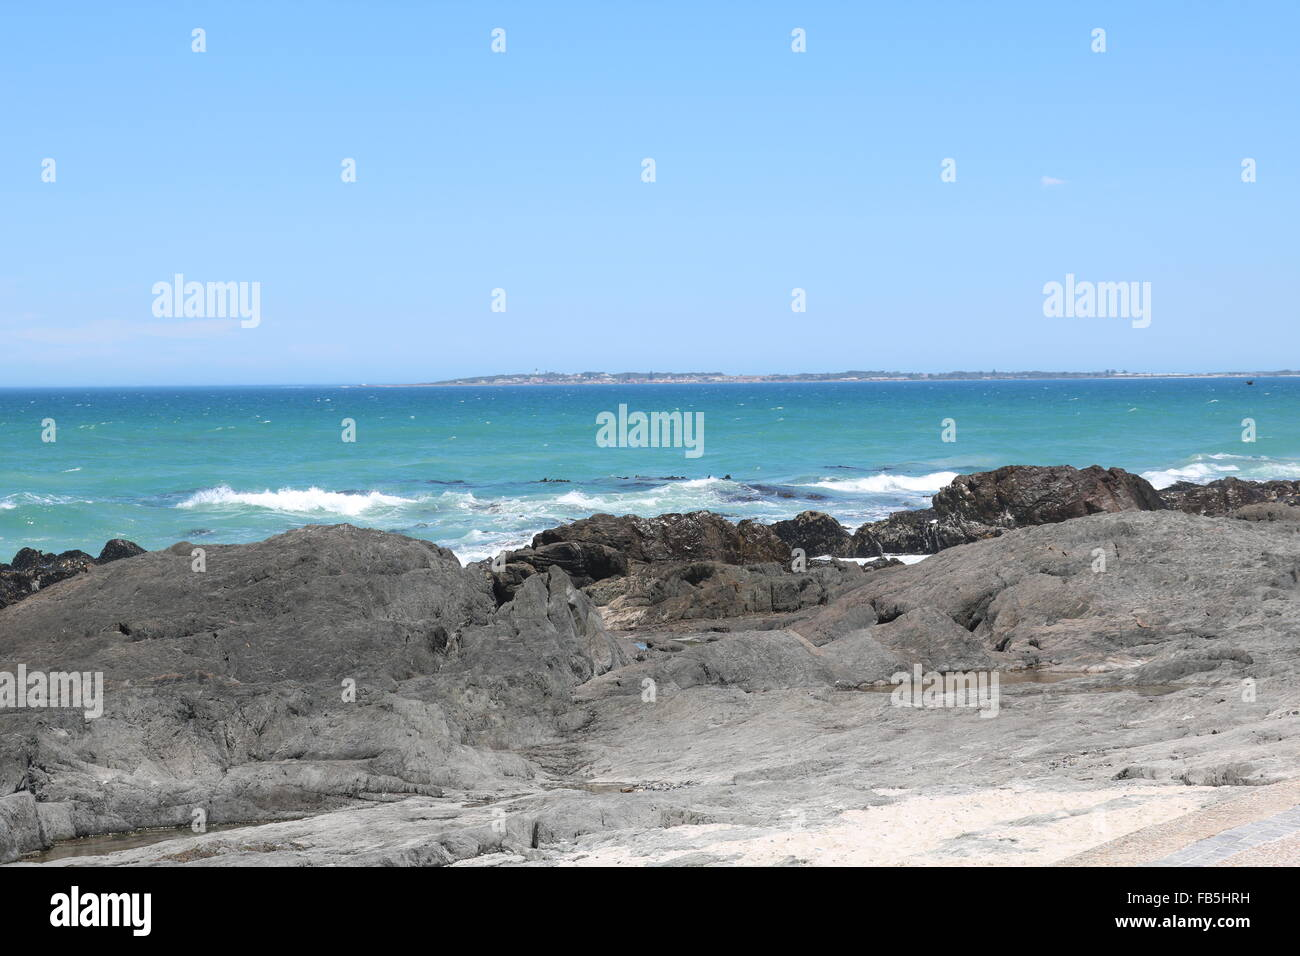 Robben Island, Cape Town, South Africa - Stock Image